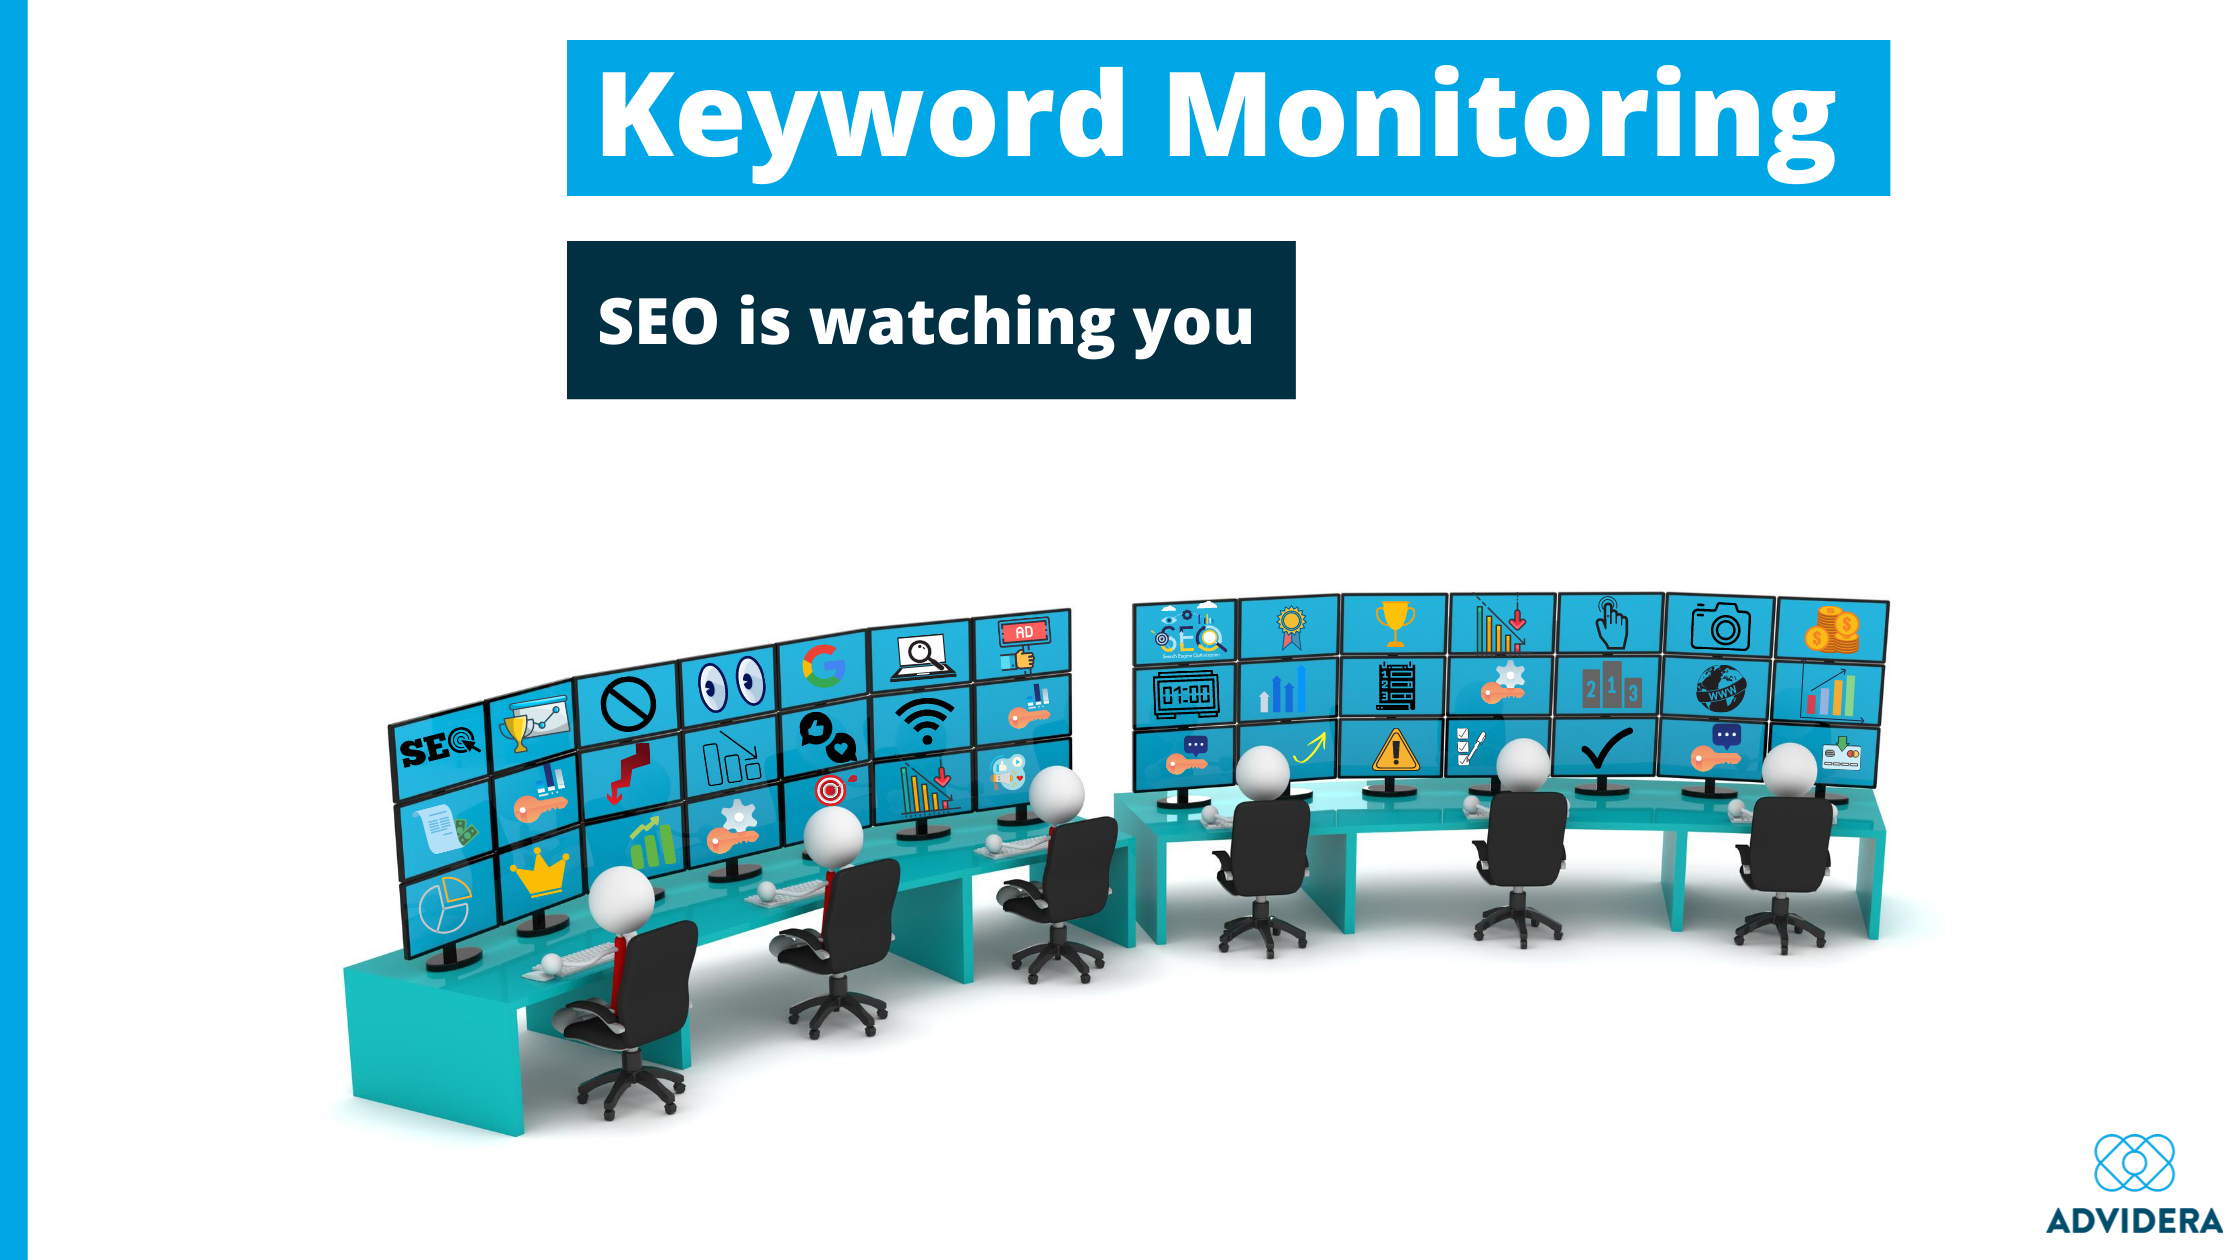 Keyword Monitoring